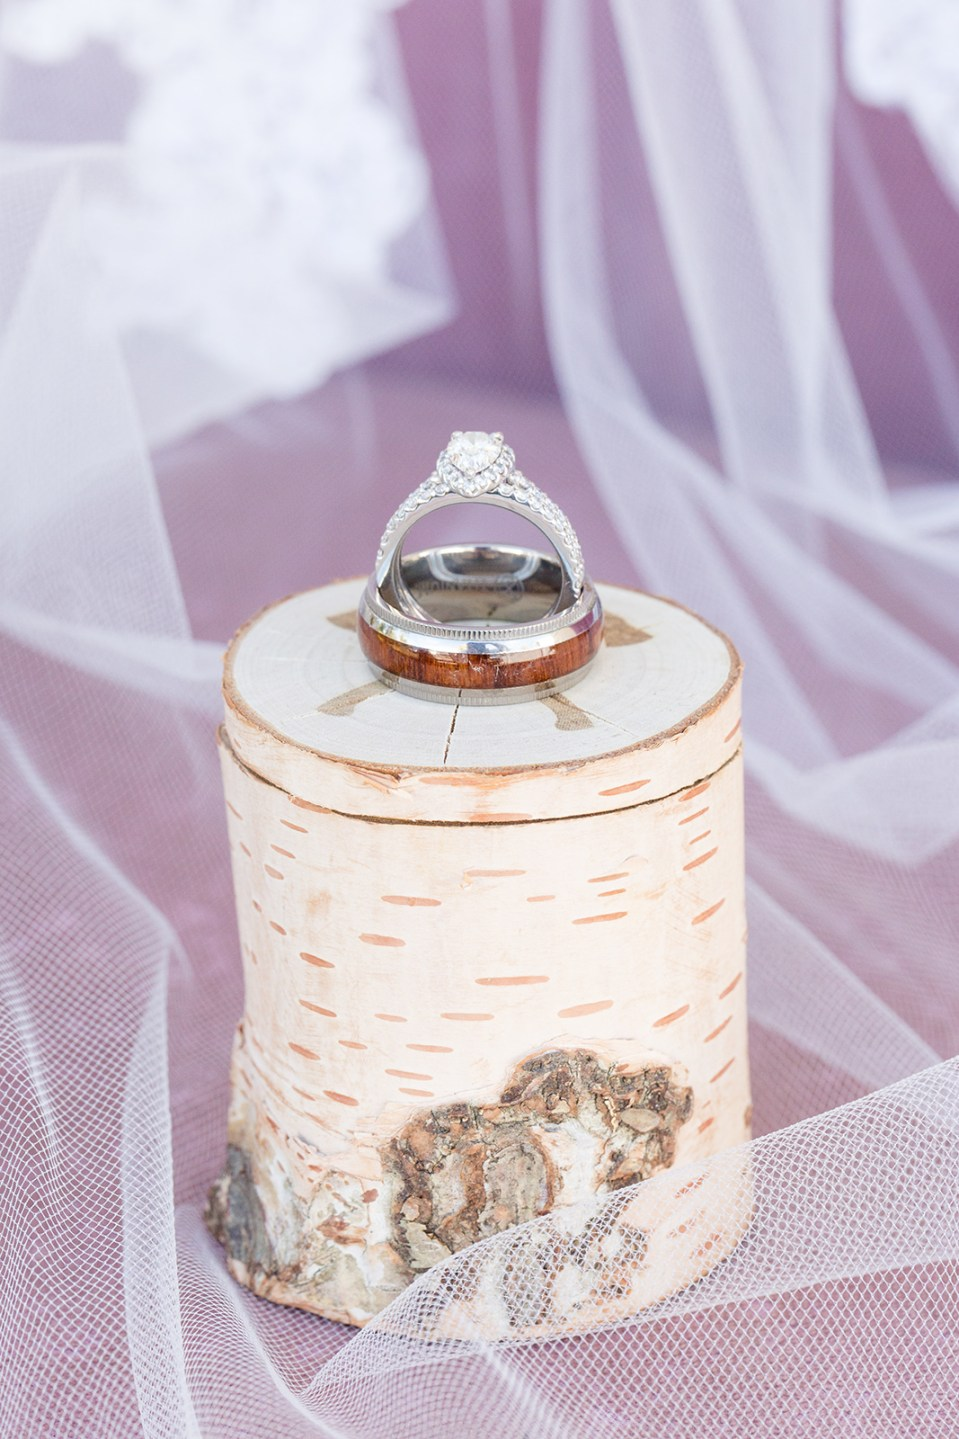 custom wooden box with wedding rings on top